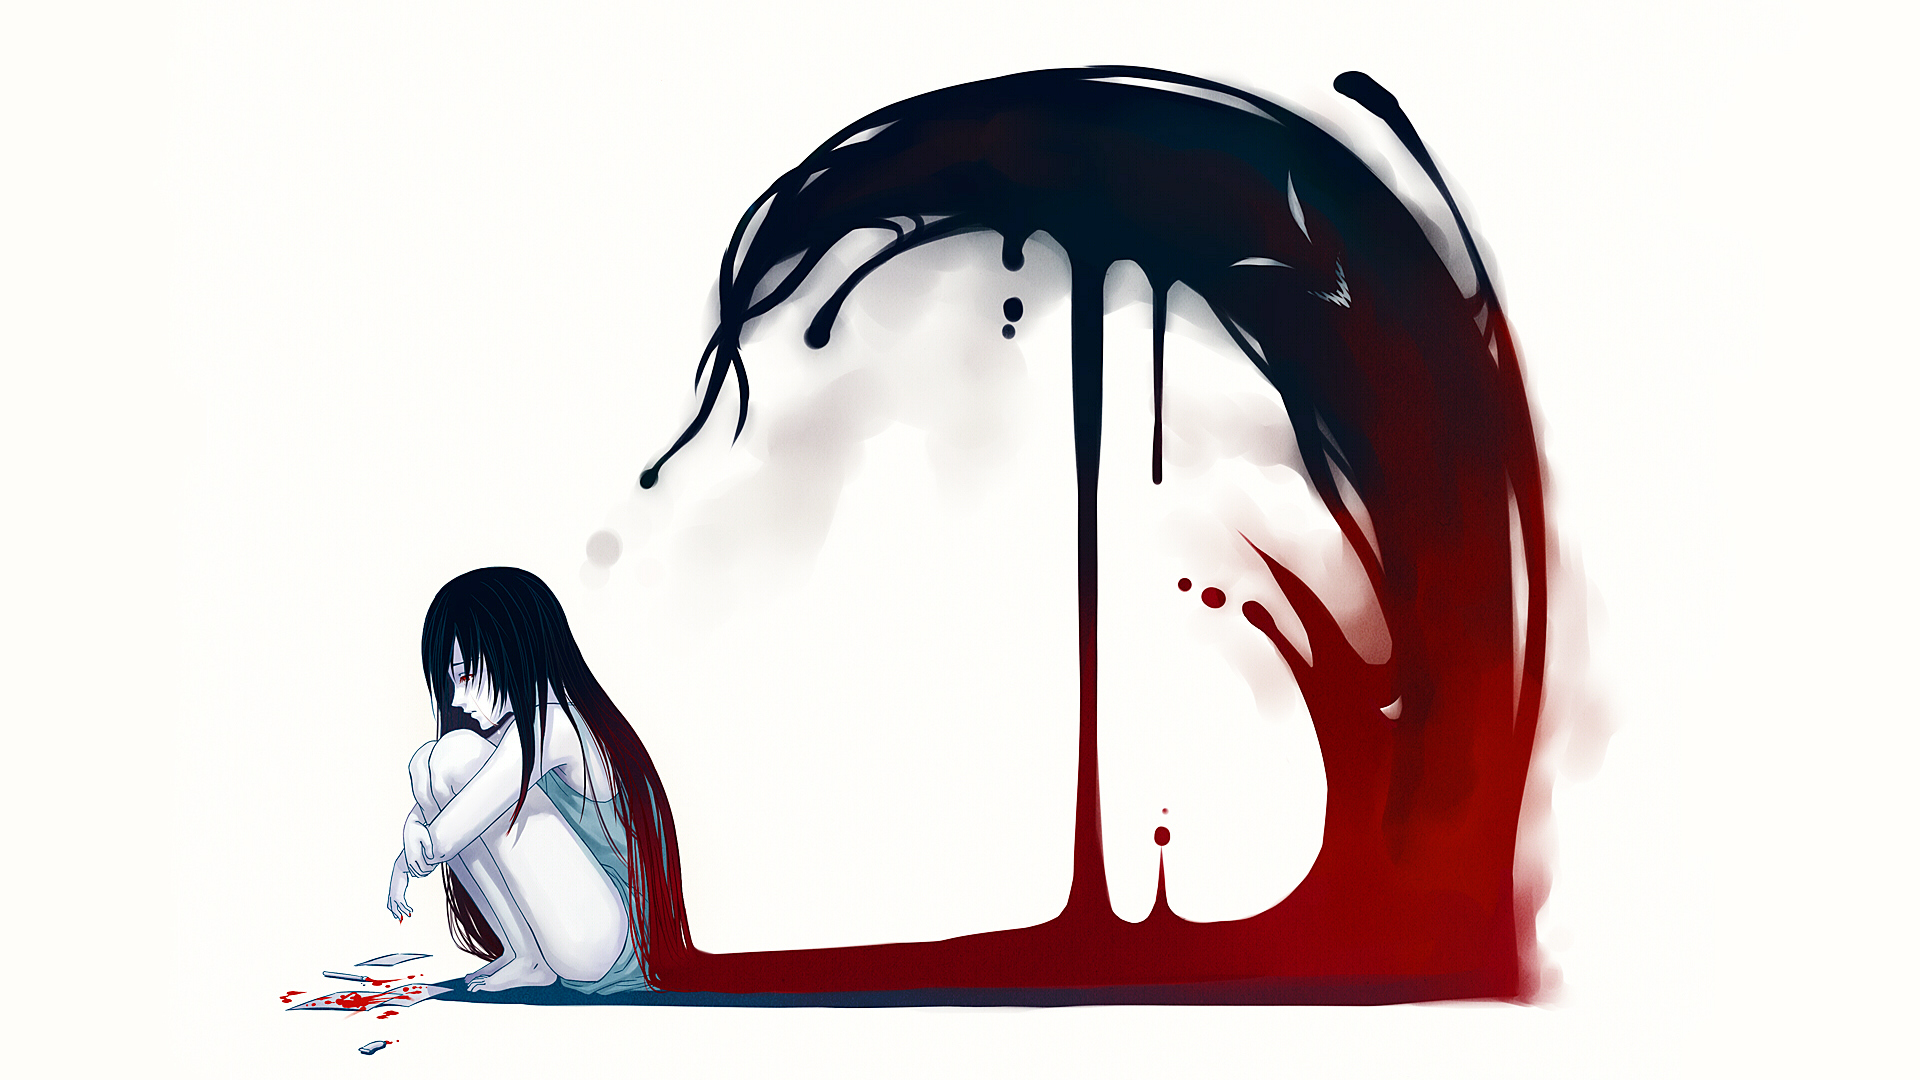 Love Sad Blood Wallpaper : Anime Art Full HD Wallpaper and Background 1920x1080 ID:676603